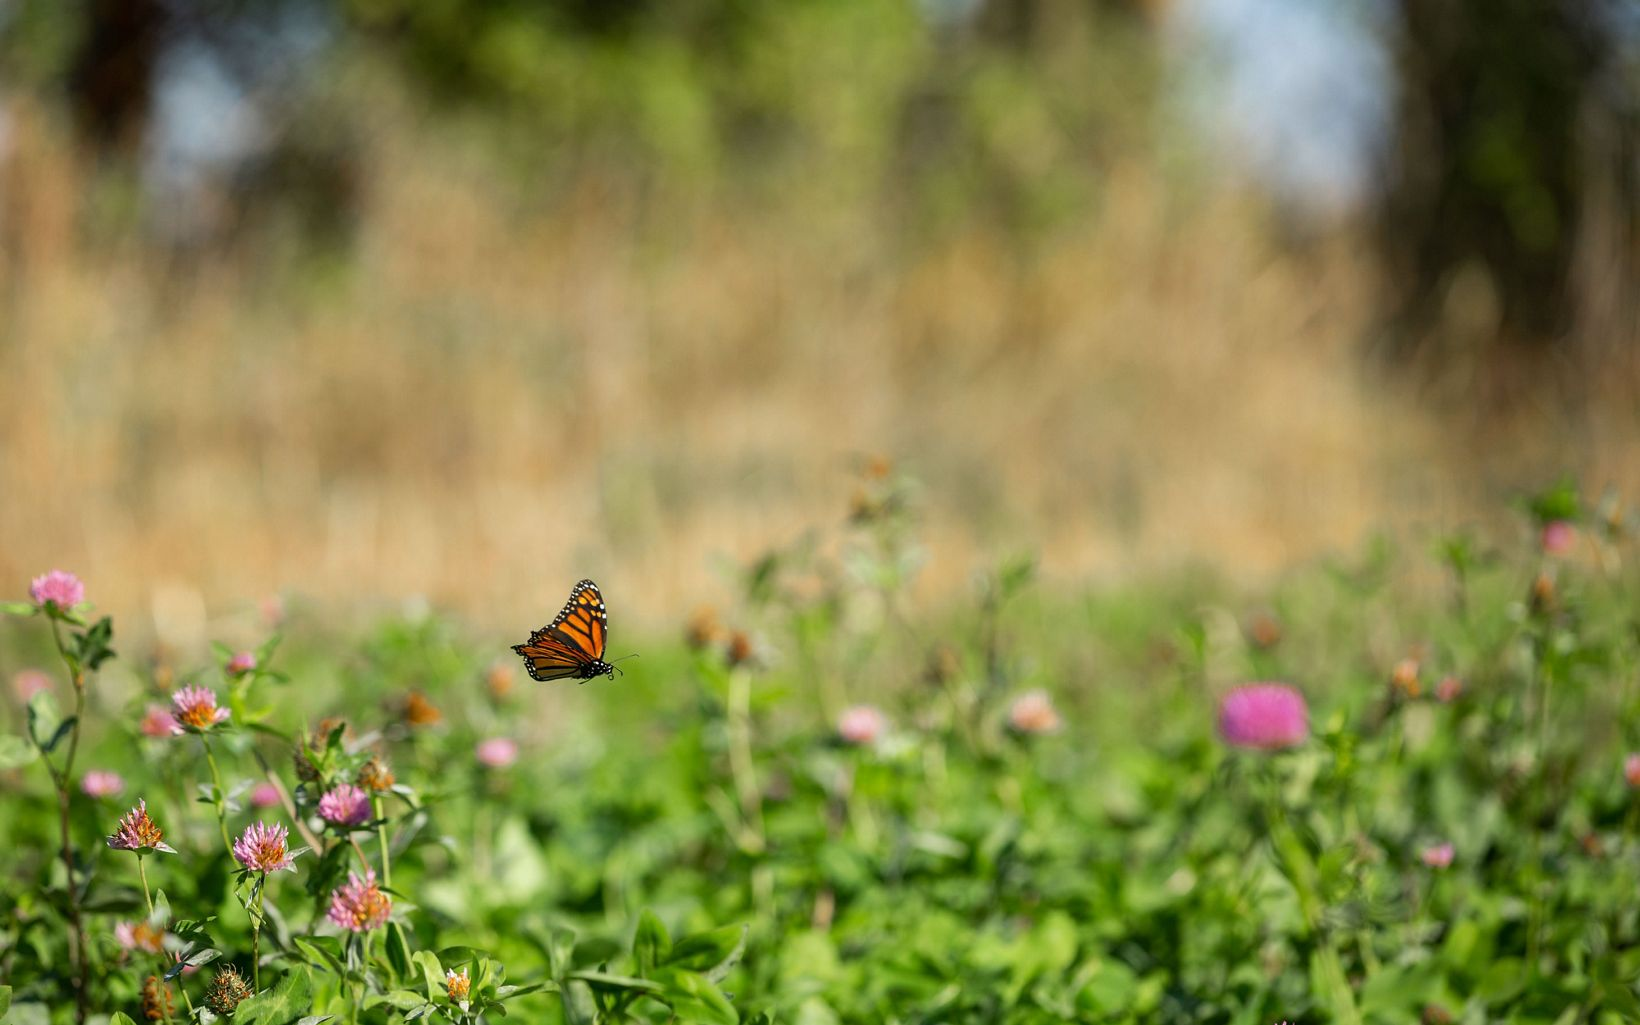 An orange and black butterfly flies between green plants with puffy pink flowers.